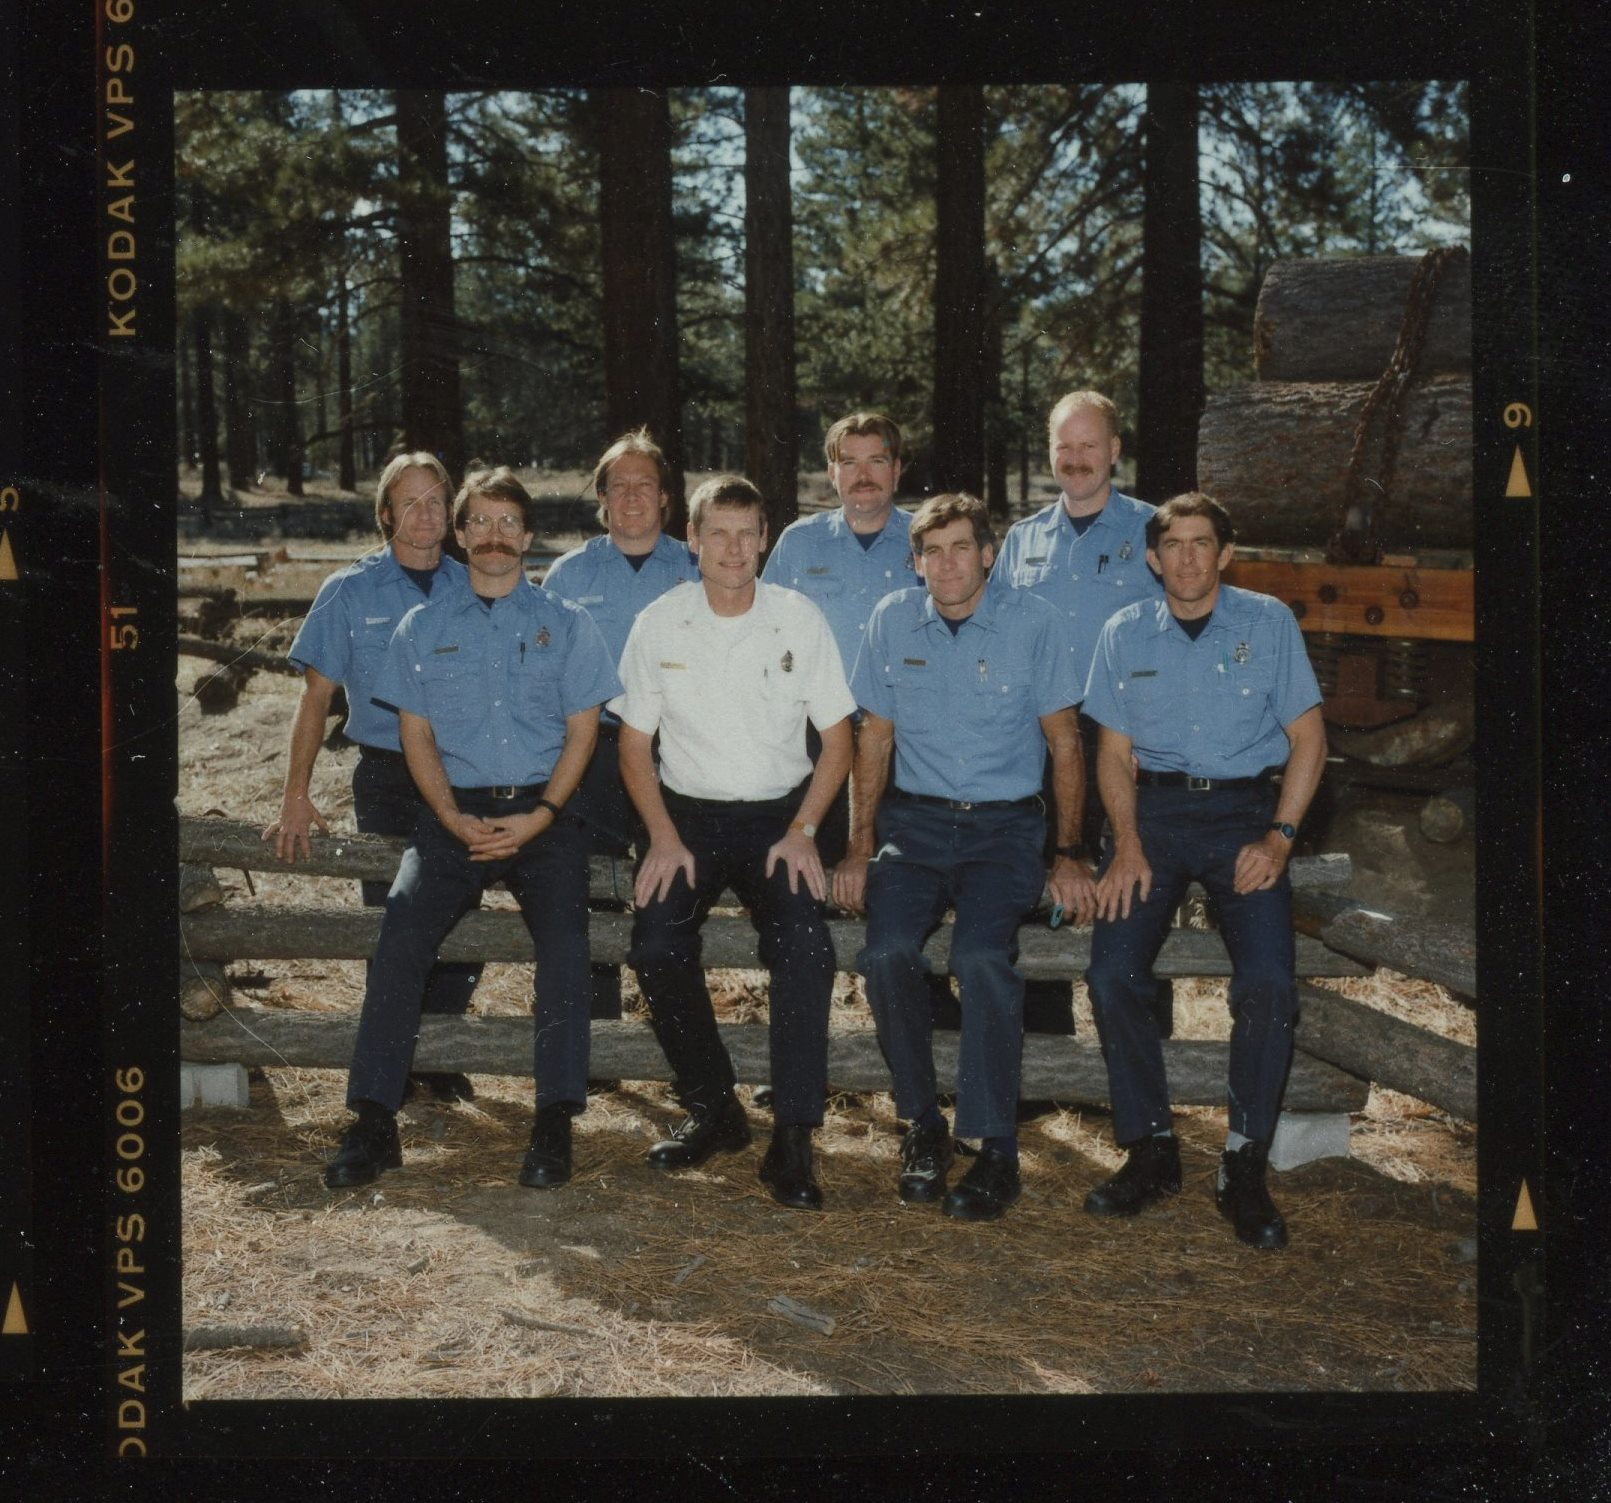 1994 Fire Department staff